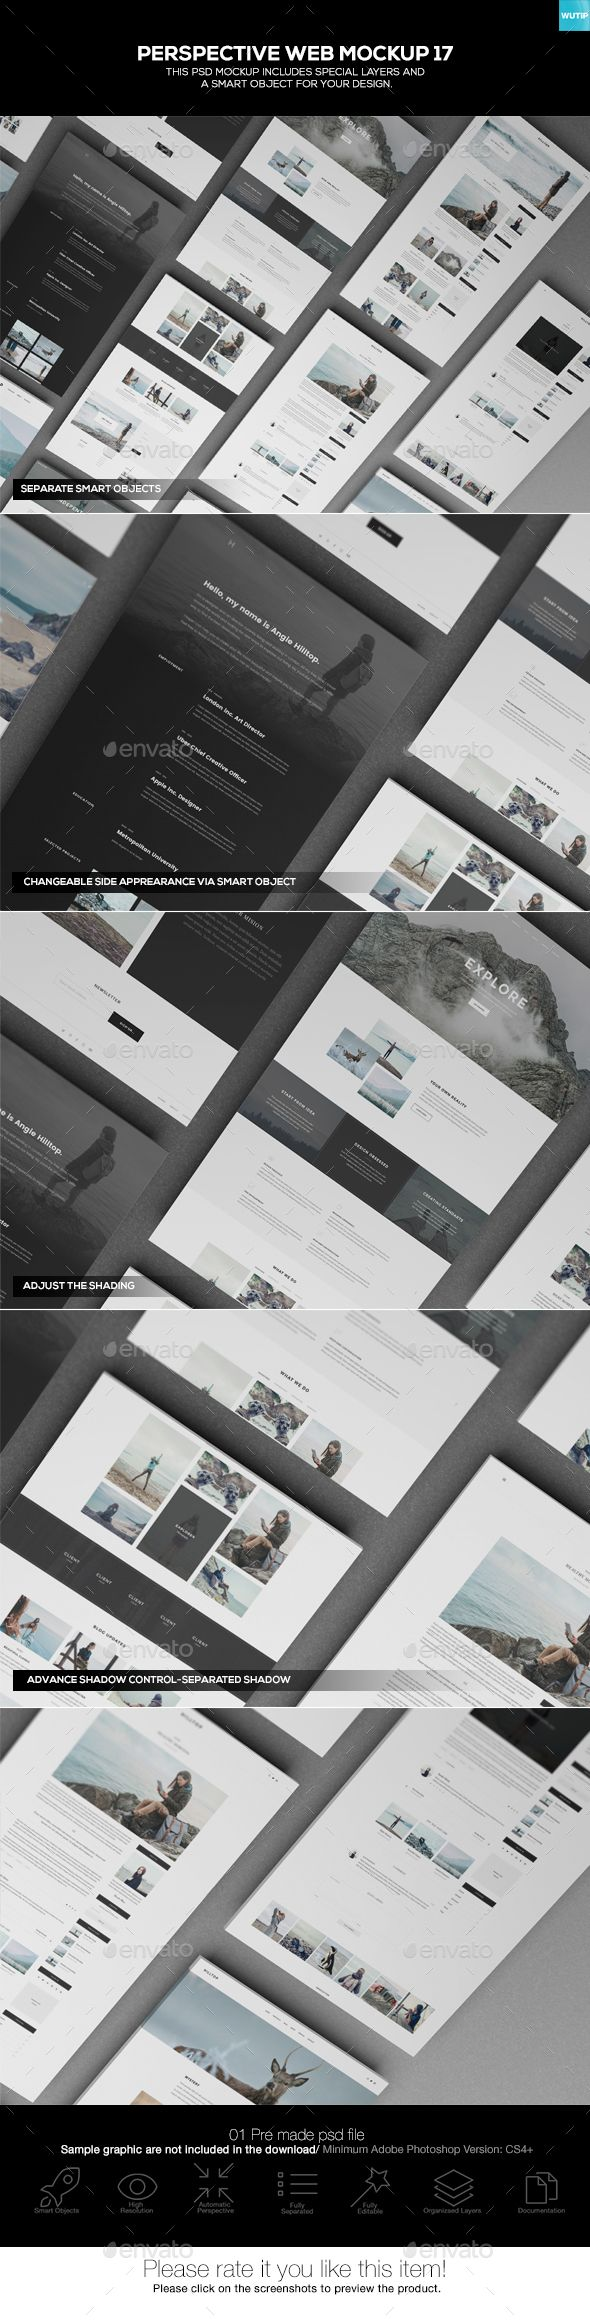 Perspective Web Mockup 17 by Wutip With a view to bringing a super amazing look to your company鈥檚 website and engage the public attention, our web mockup comes out t